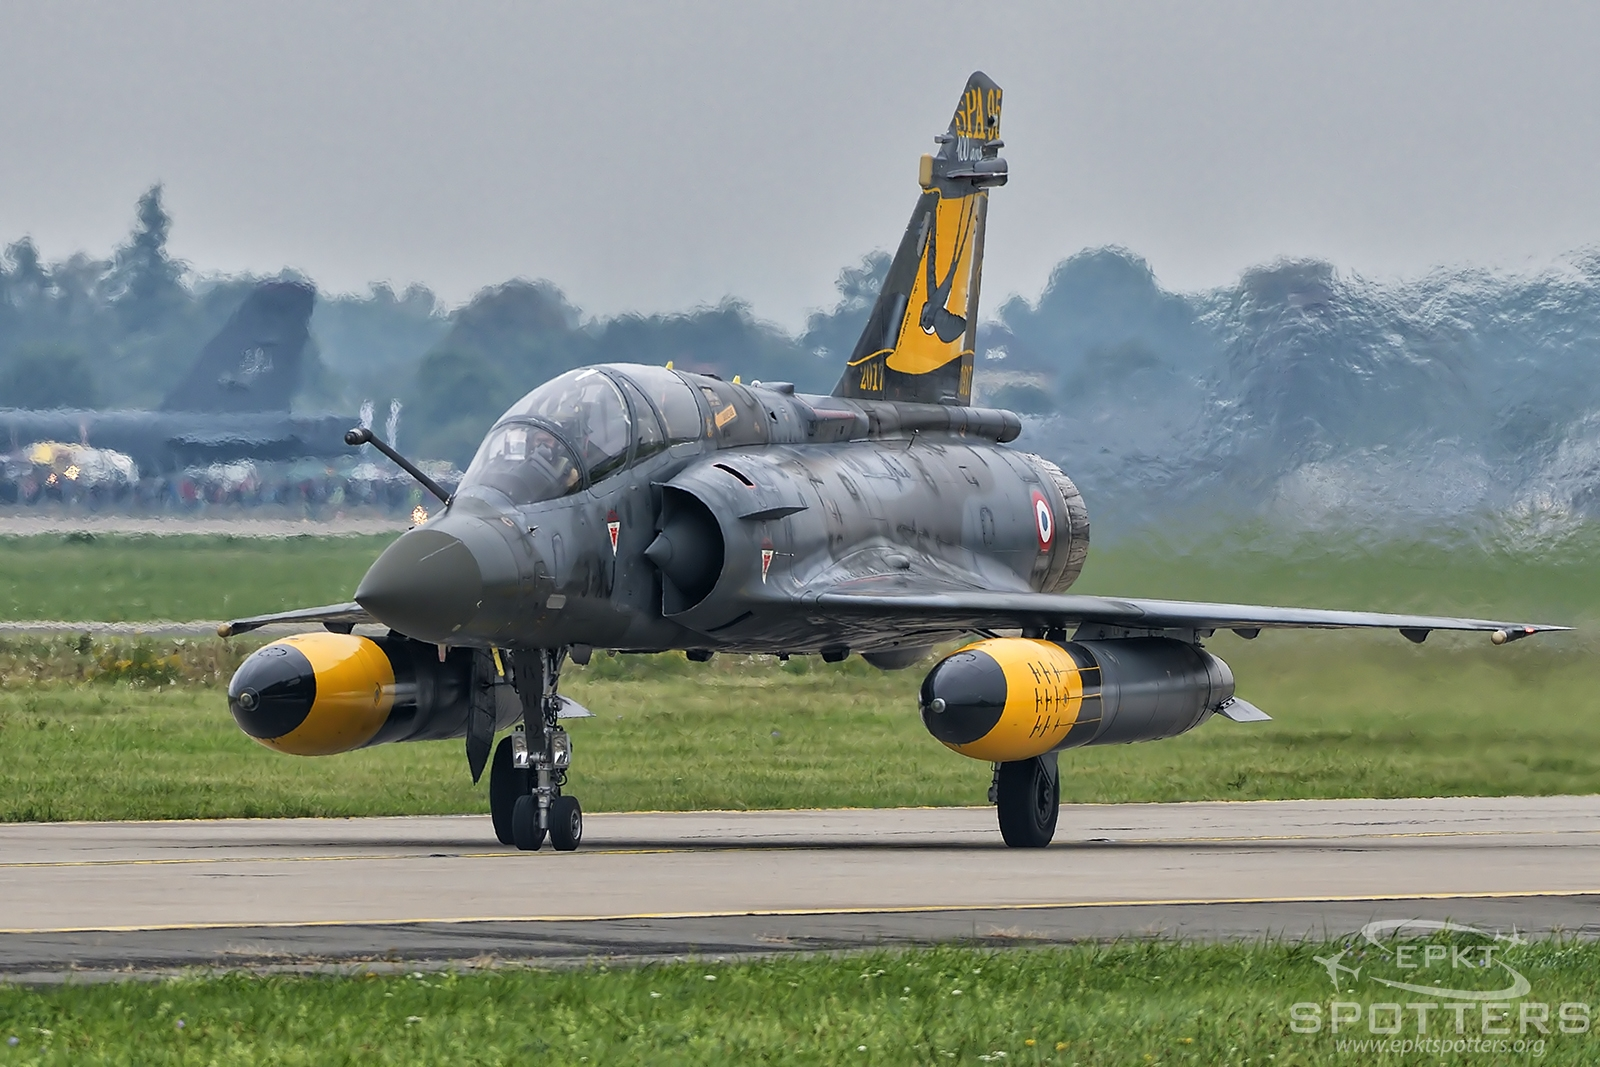 602 - Dassault Mirage 2000 D (France - Air Force) / Leos Janacek Airport - Ostrava Czech Republic [LKMT/OSR]